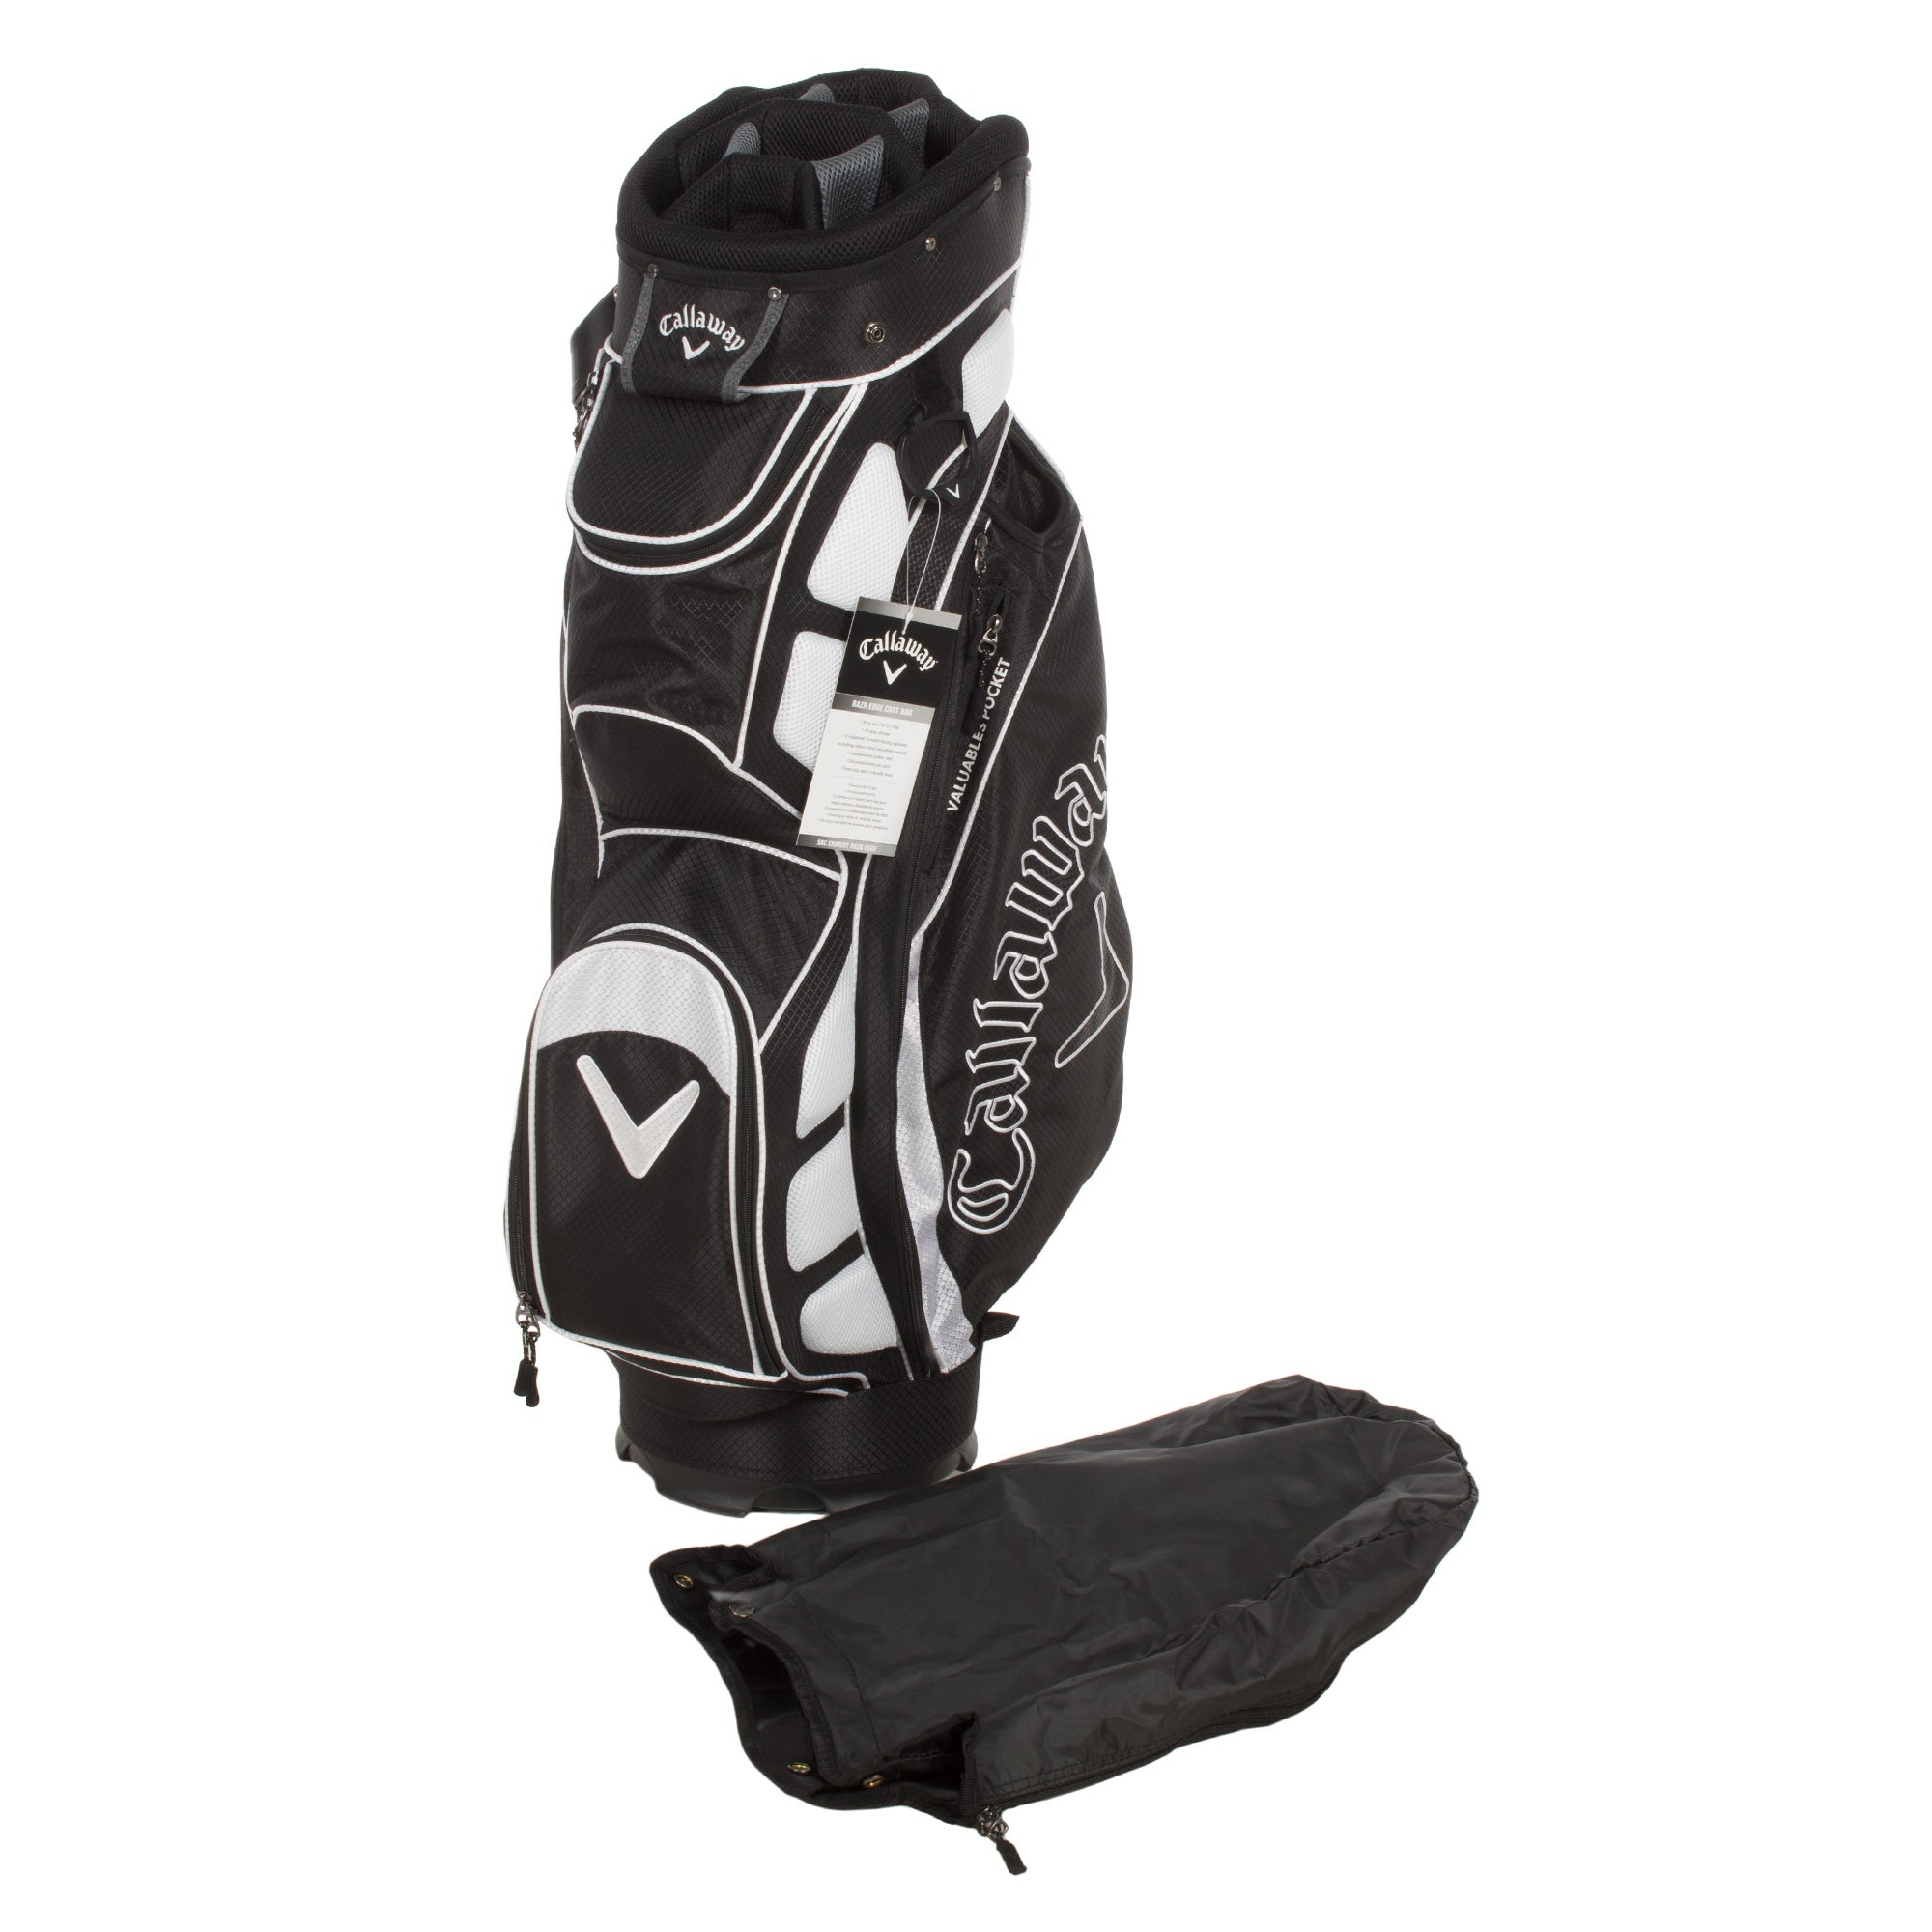 Callaway Razr Edge Cart Bag in Black and White